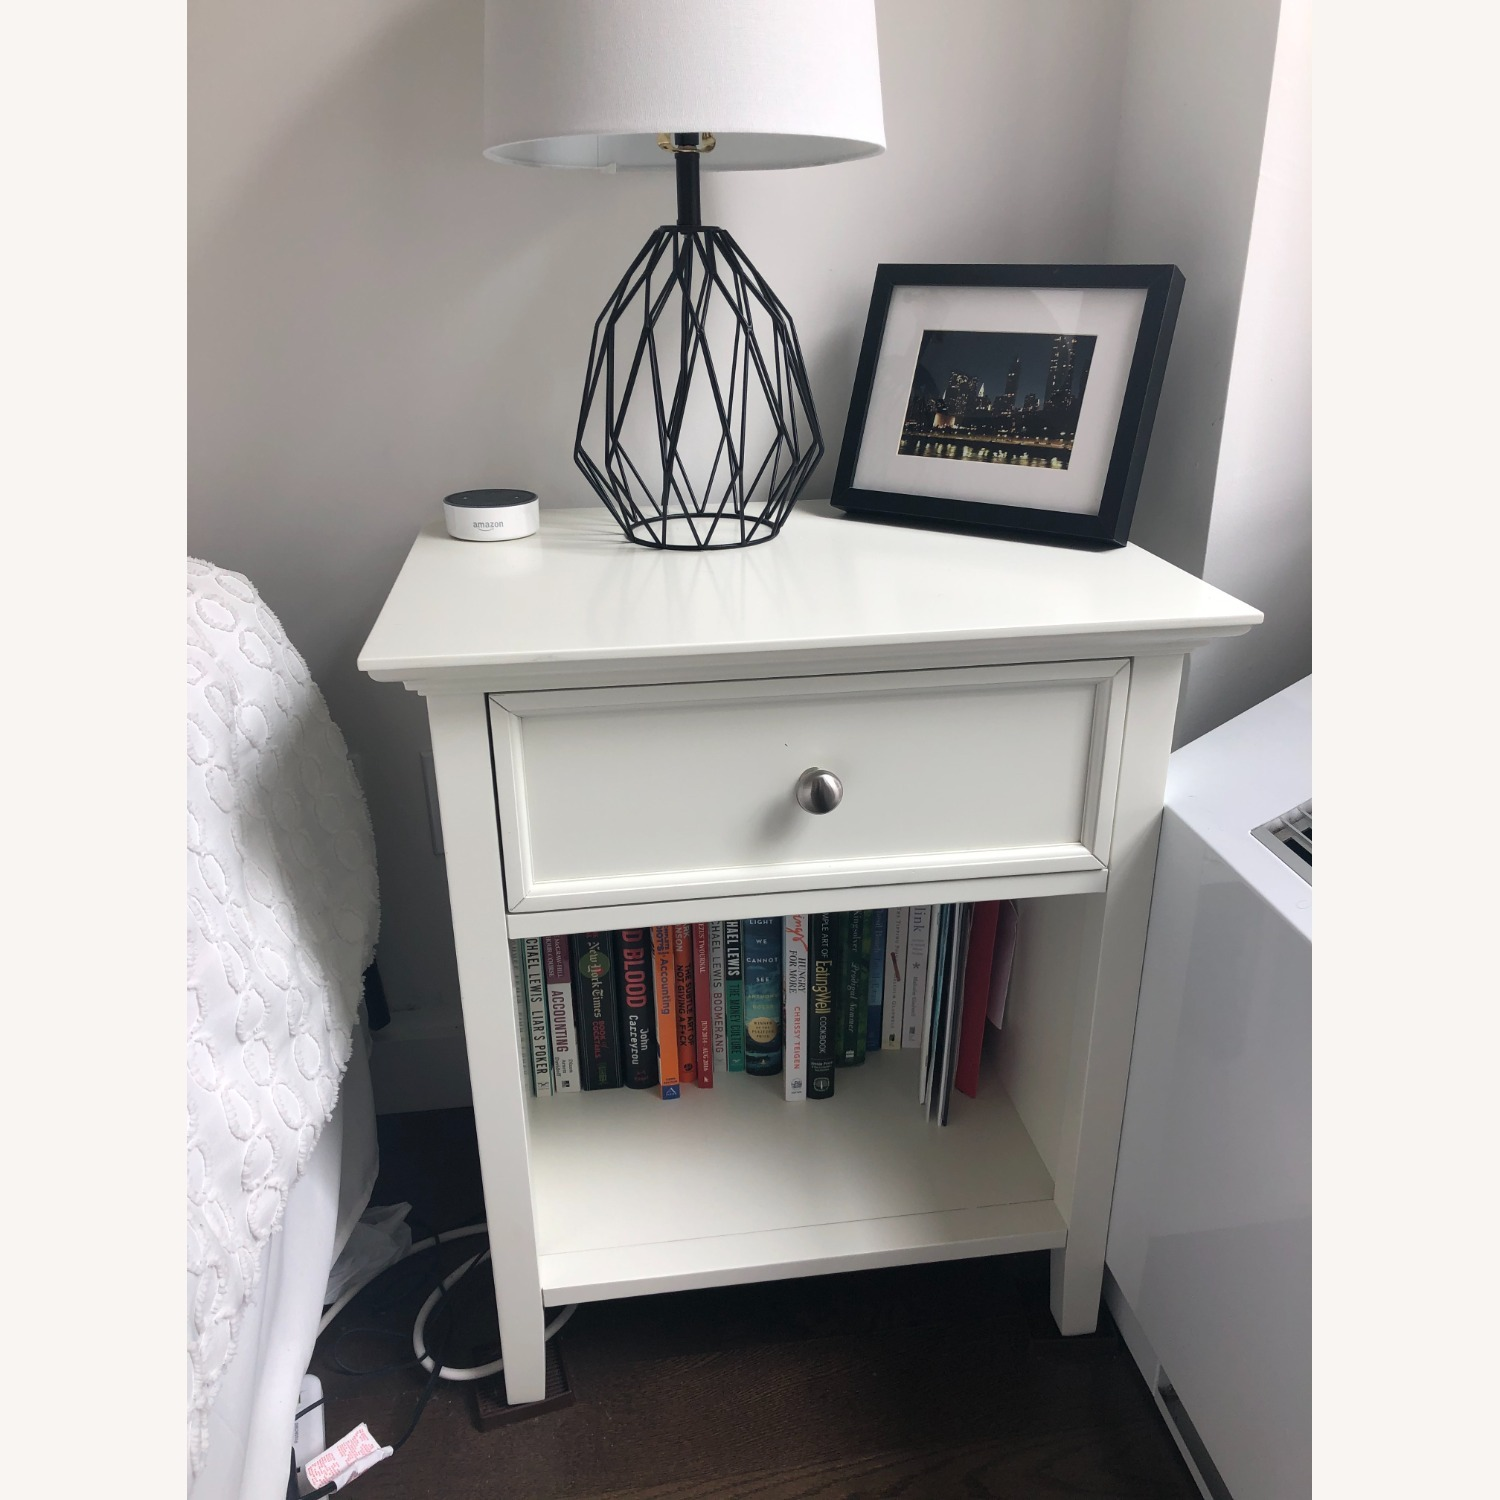 Mealey's Furniture White Wood End Table set (2) - image-2